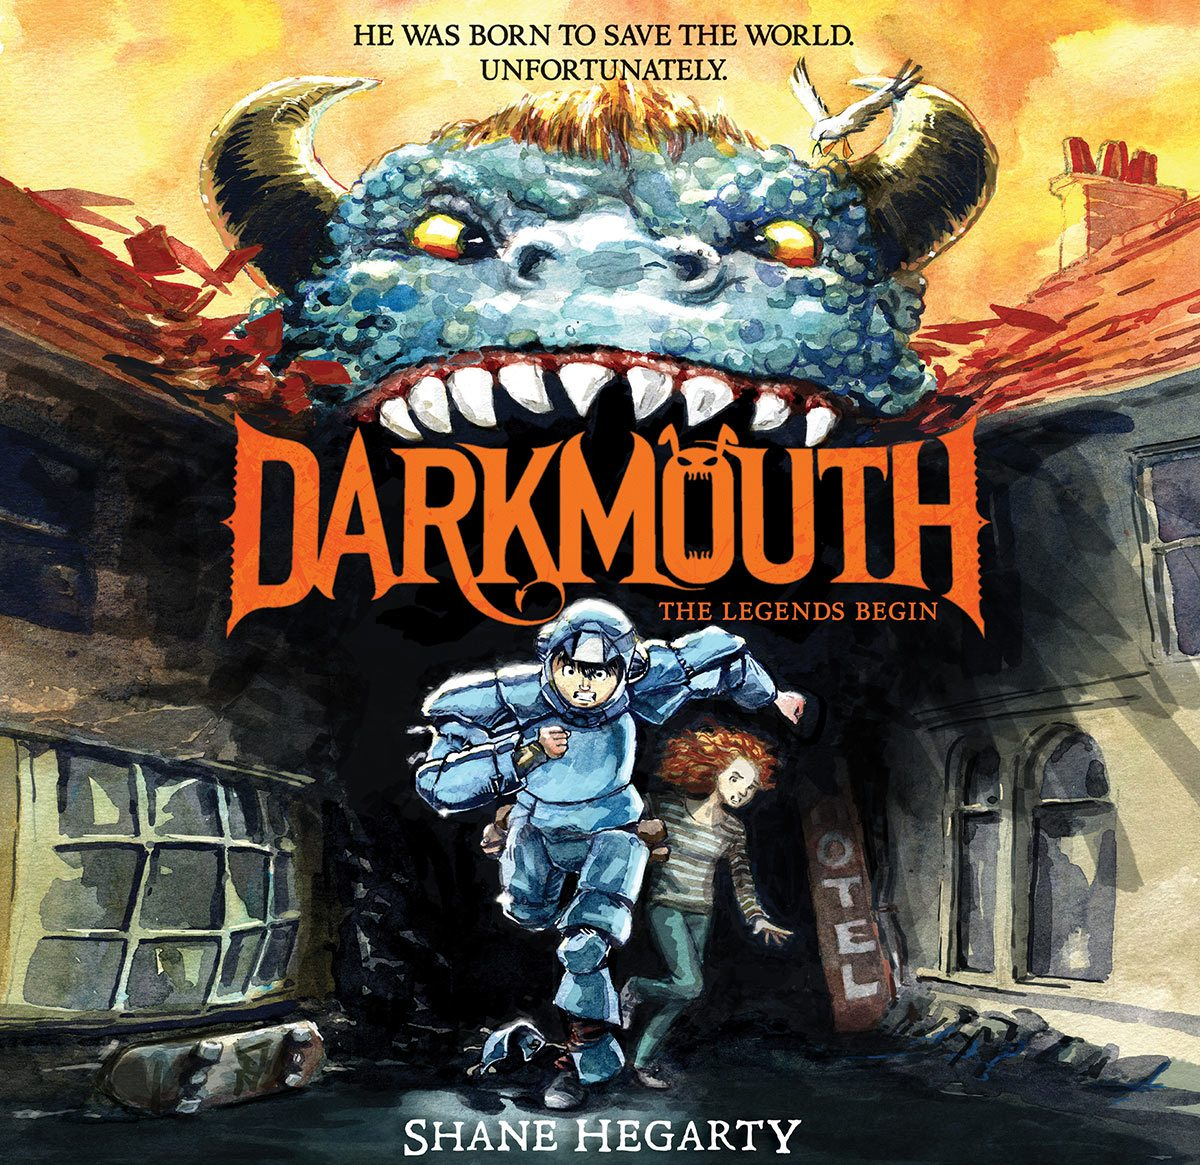 Darkmouth.